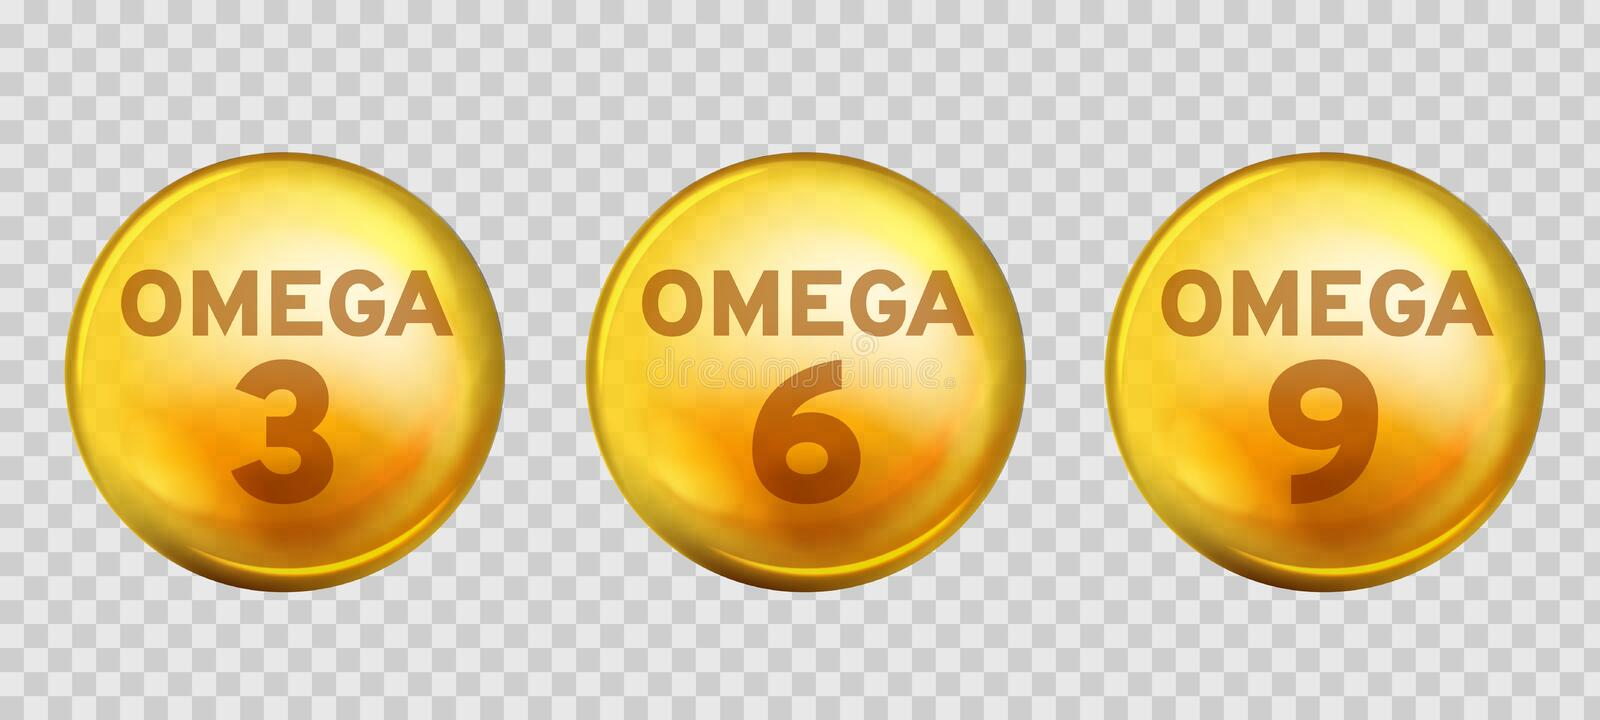 Omega acids. Healthy food supplements fatty acid epa dha 3, 6 and 9 organic vitamin nutrient fish oil, diet golden drops. Vector 3d benefits gold three design stock illustration